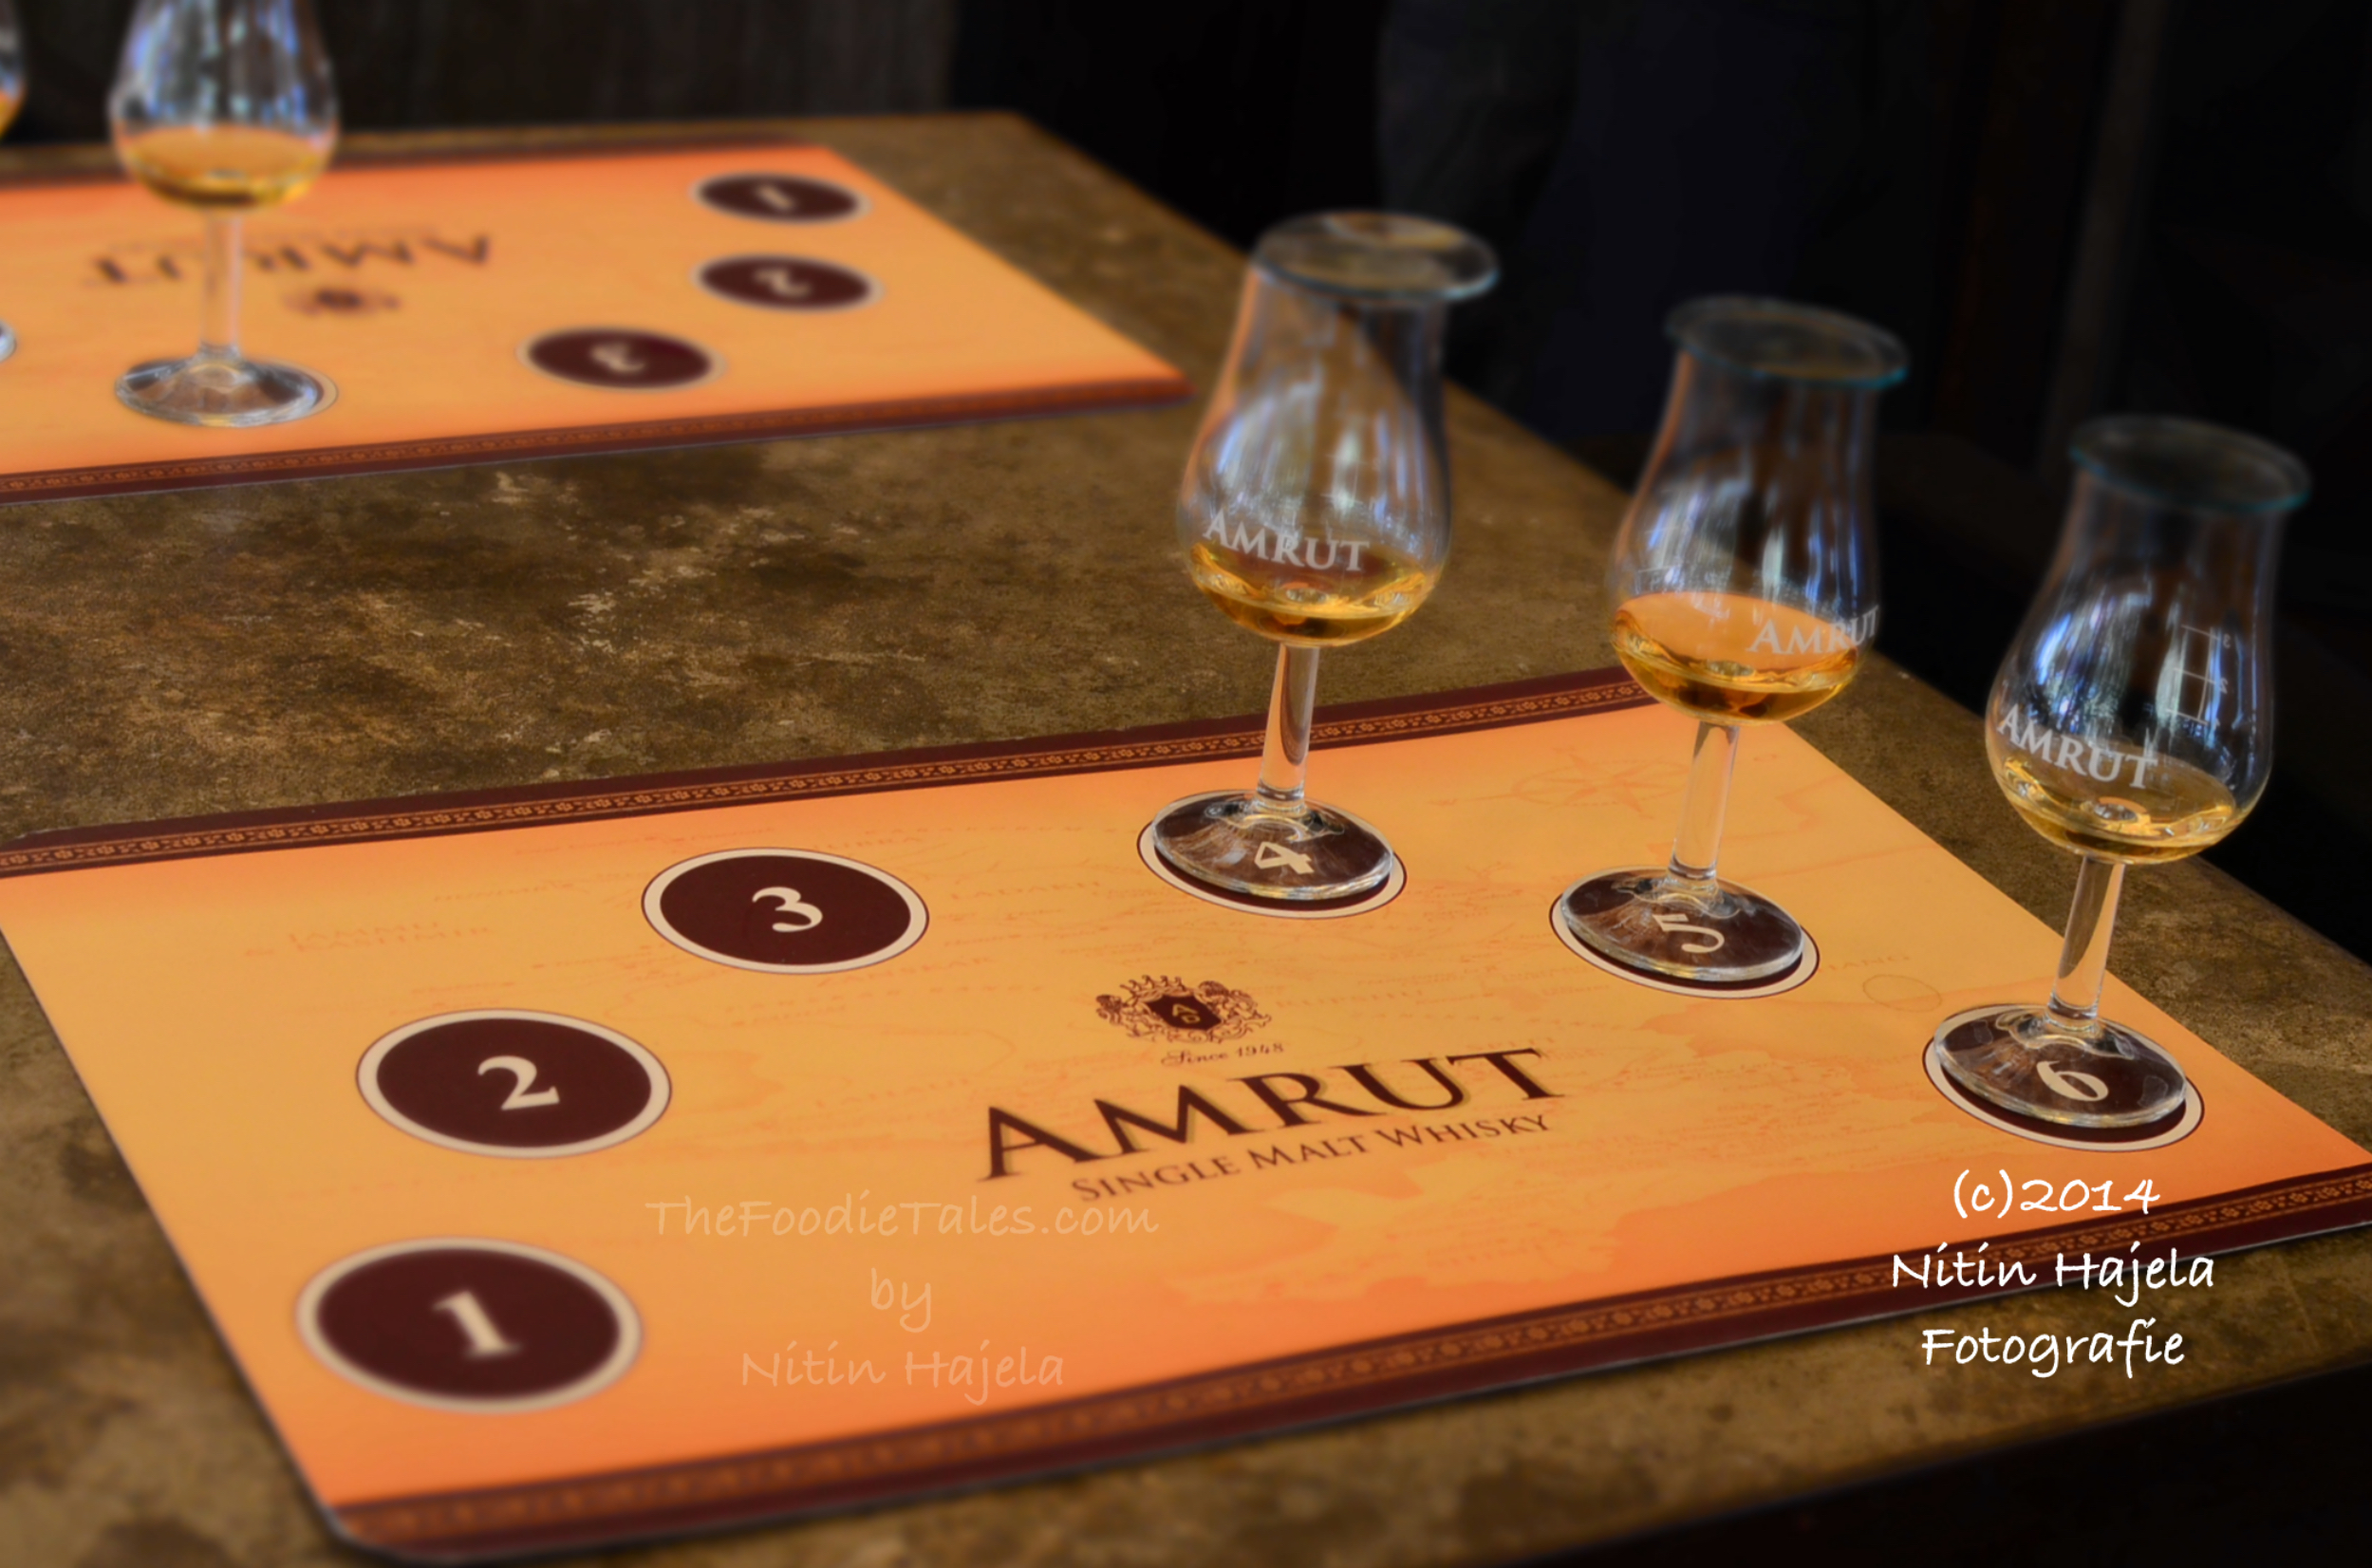 Amrut-Single Malt Whisky Appreciation @ TGH